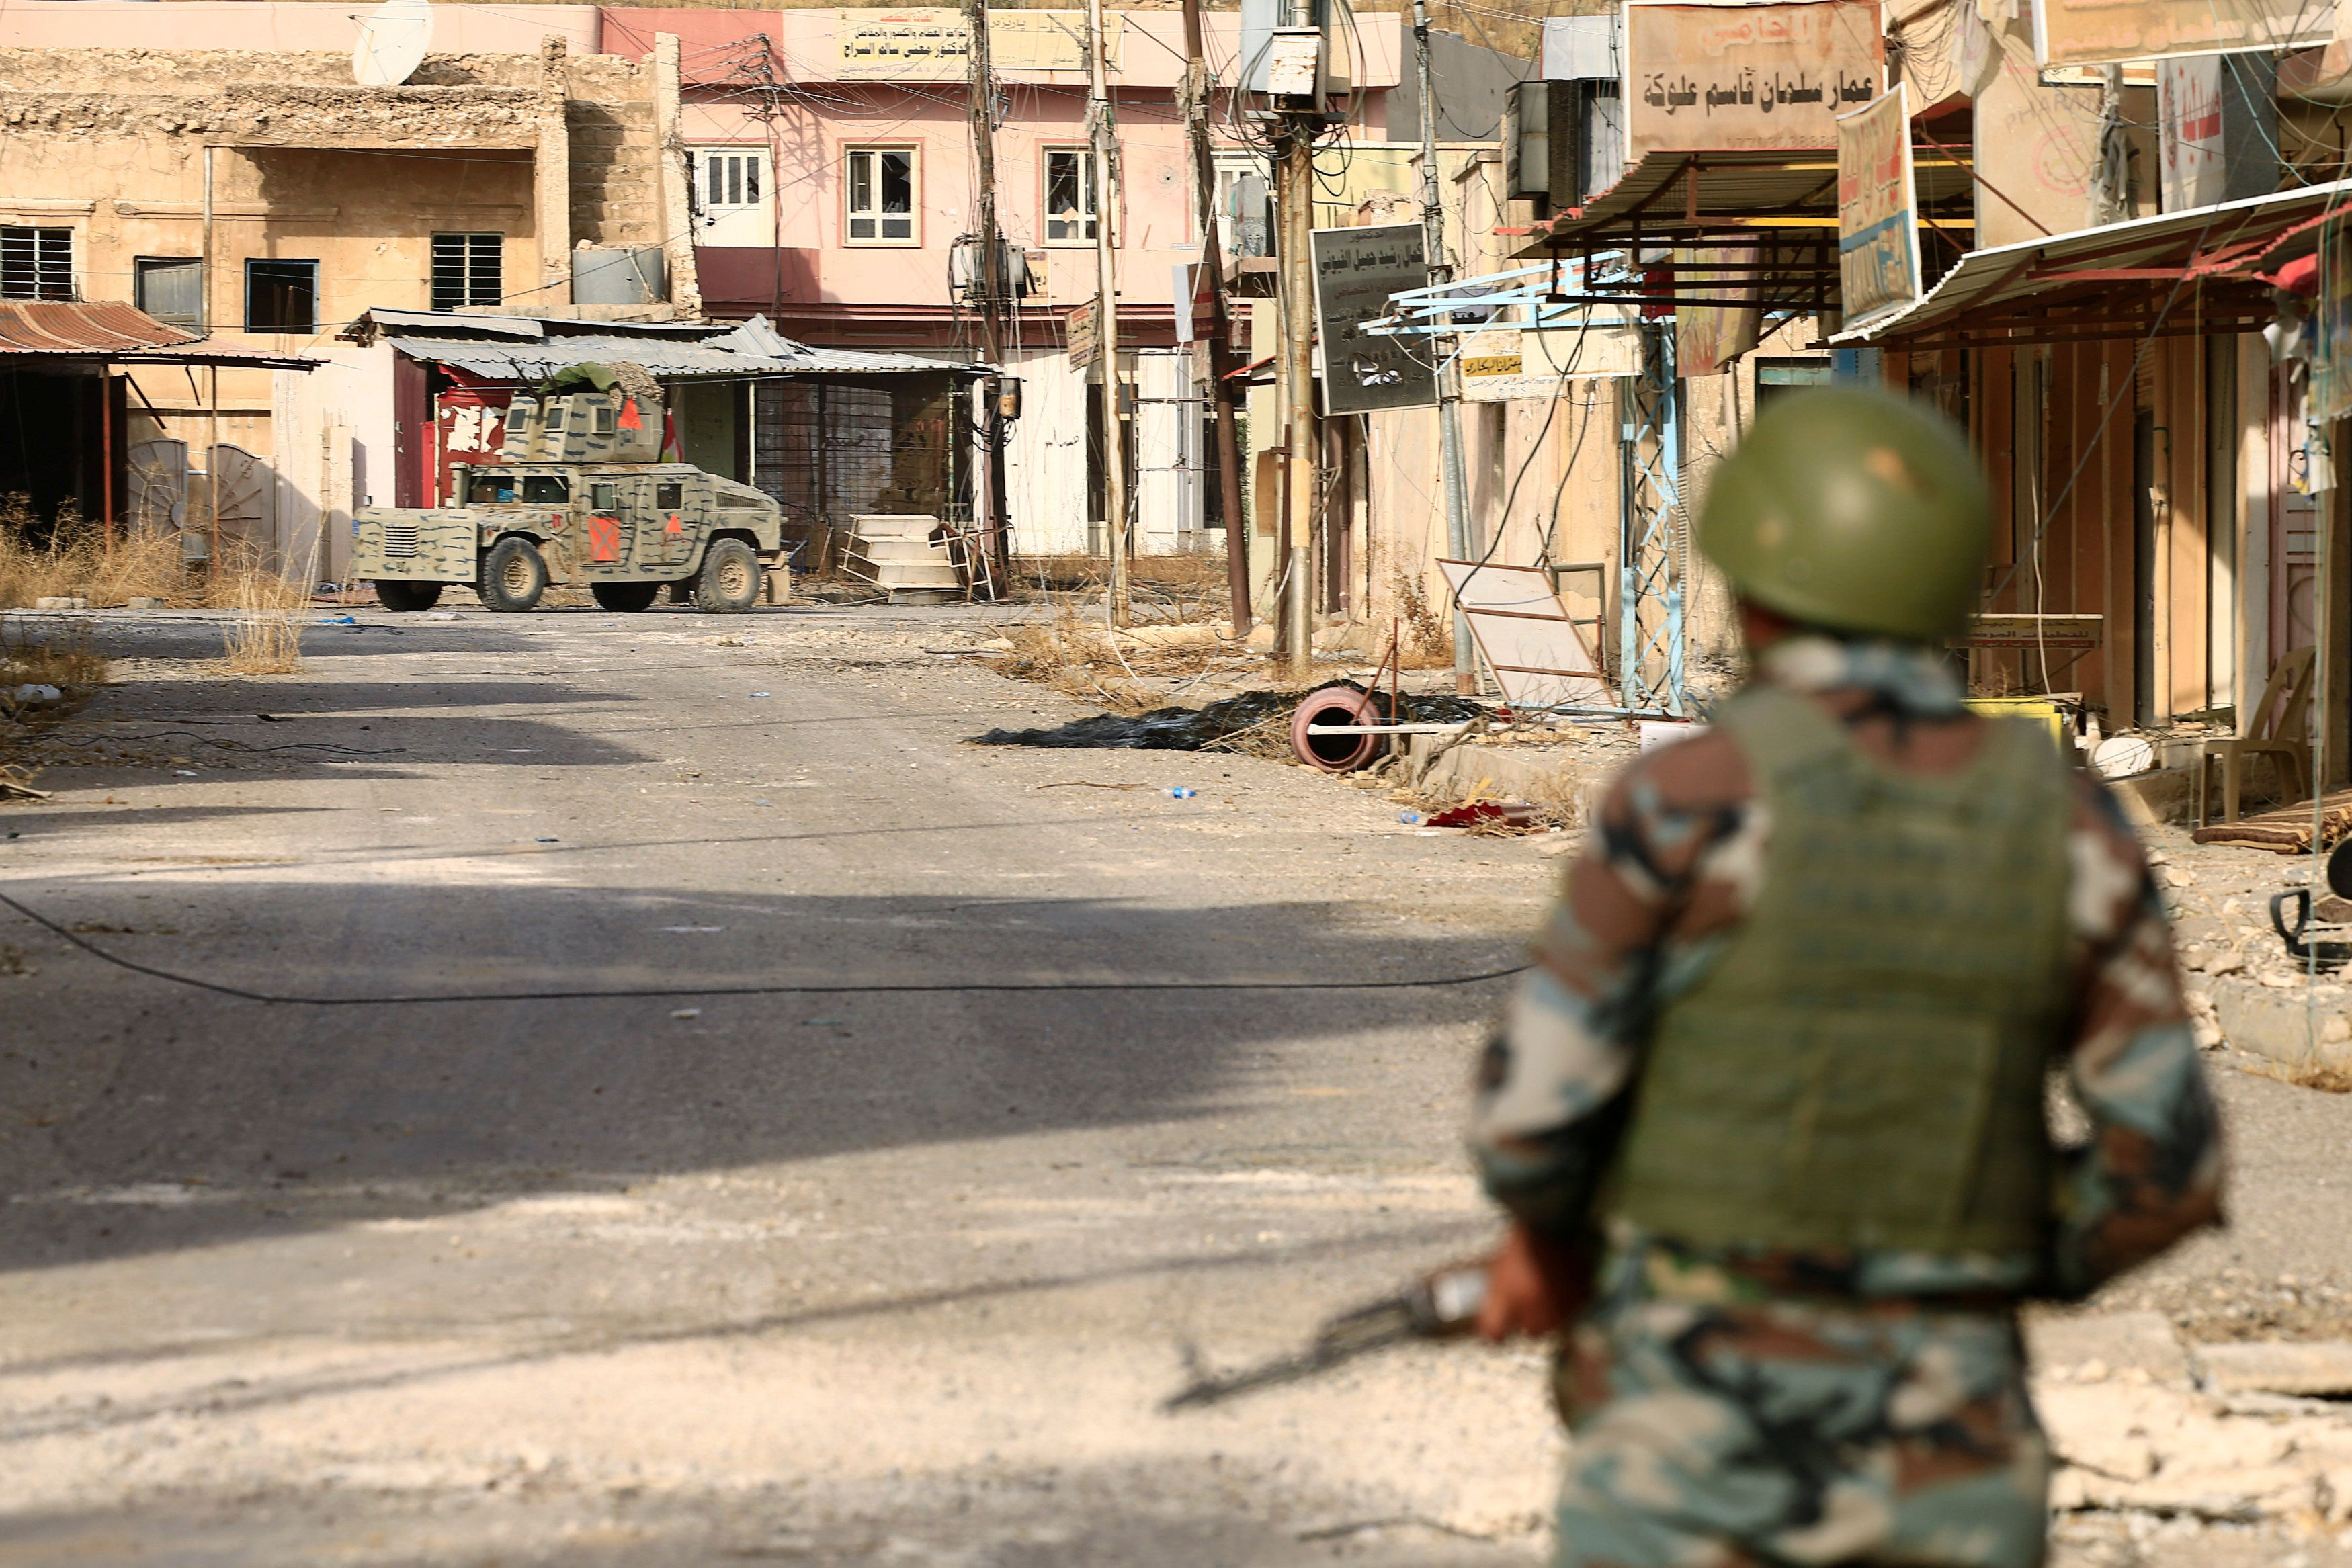 Iraqi Forces Accused Of Killing, Torturing Civilians Near